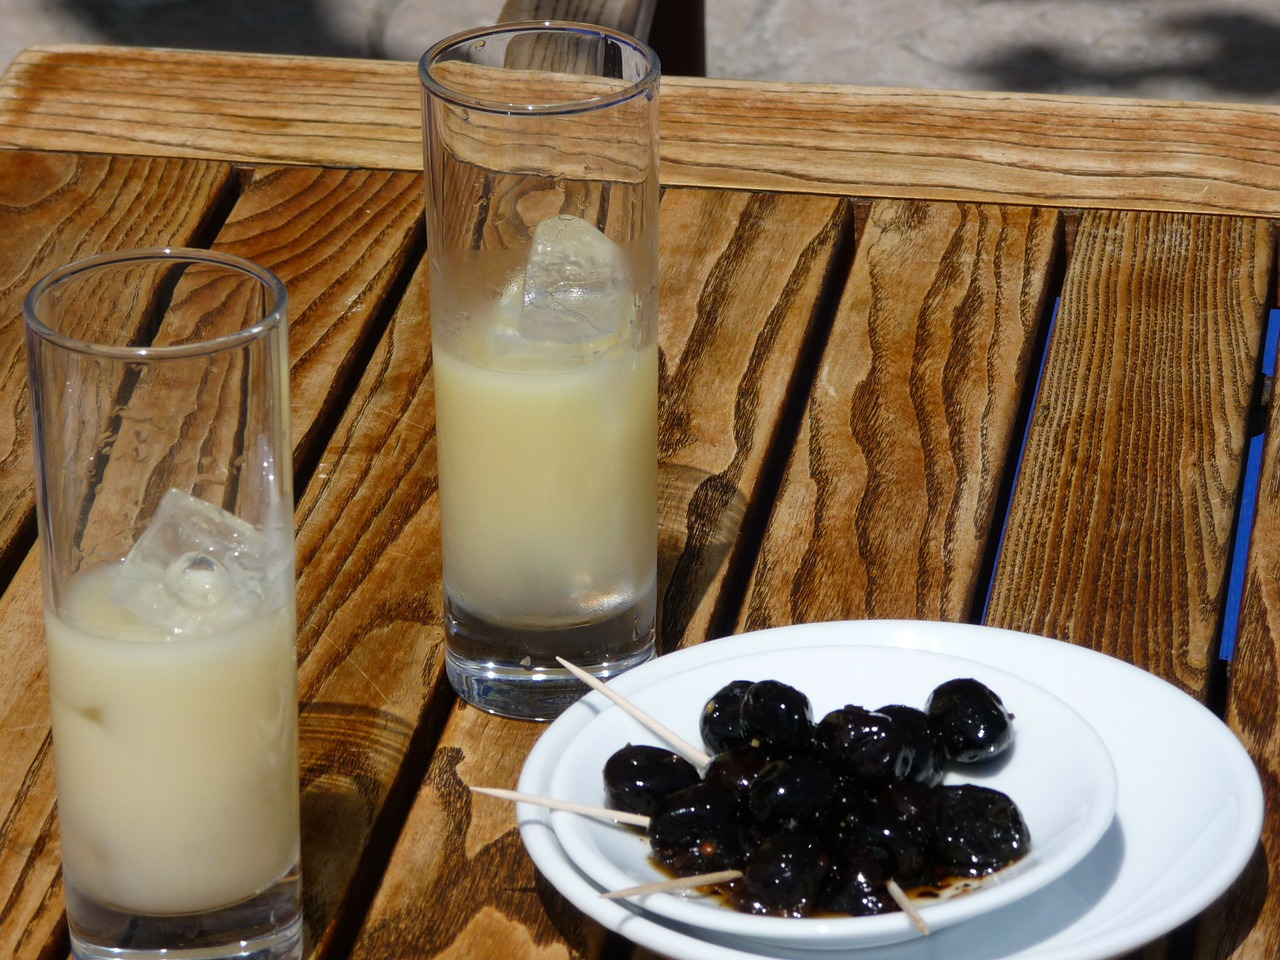 olives,pastis,black olives,aperitif,table,south of france,free pictures, free photos, free images, royalty free, free illustrations, public domain